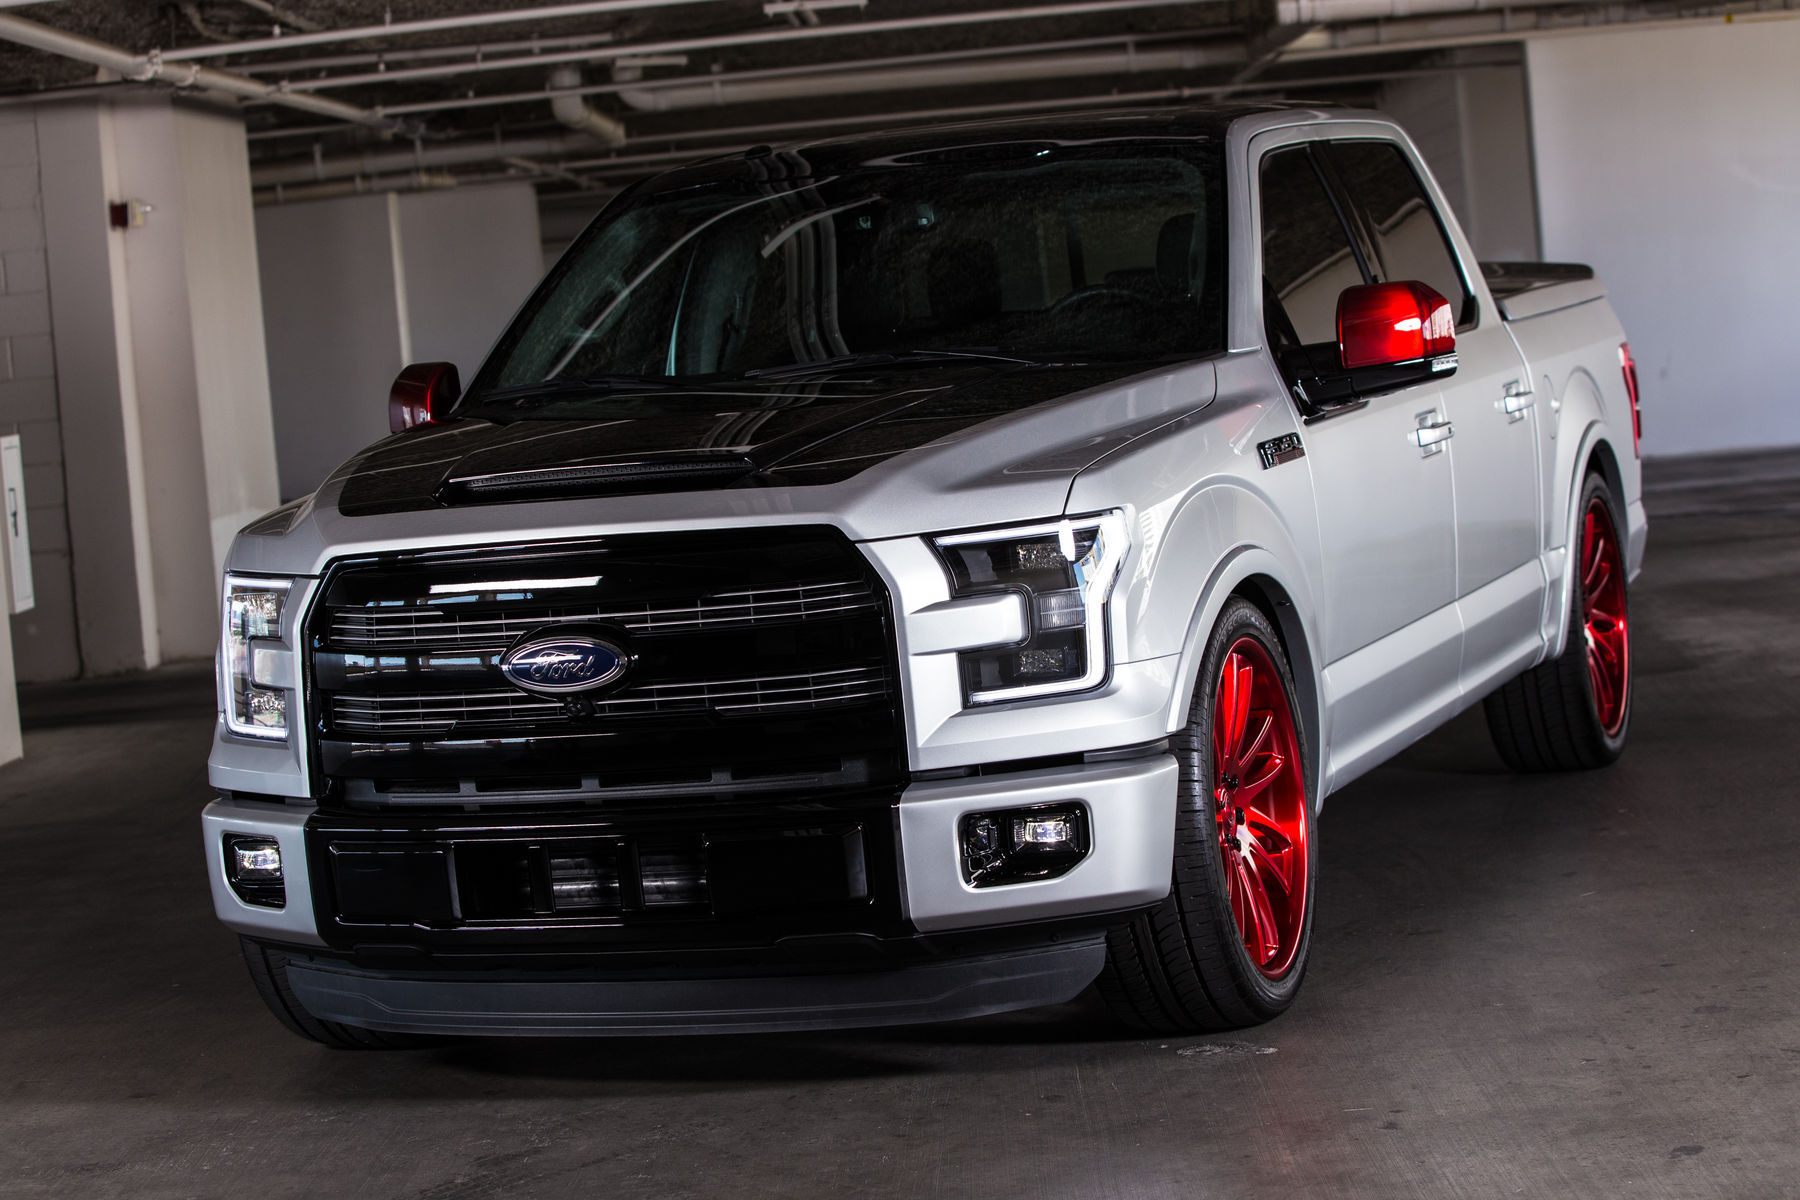 2015 Ford F-150 | 2015 CGS Performance Ford F-150 Lariat - Front View